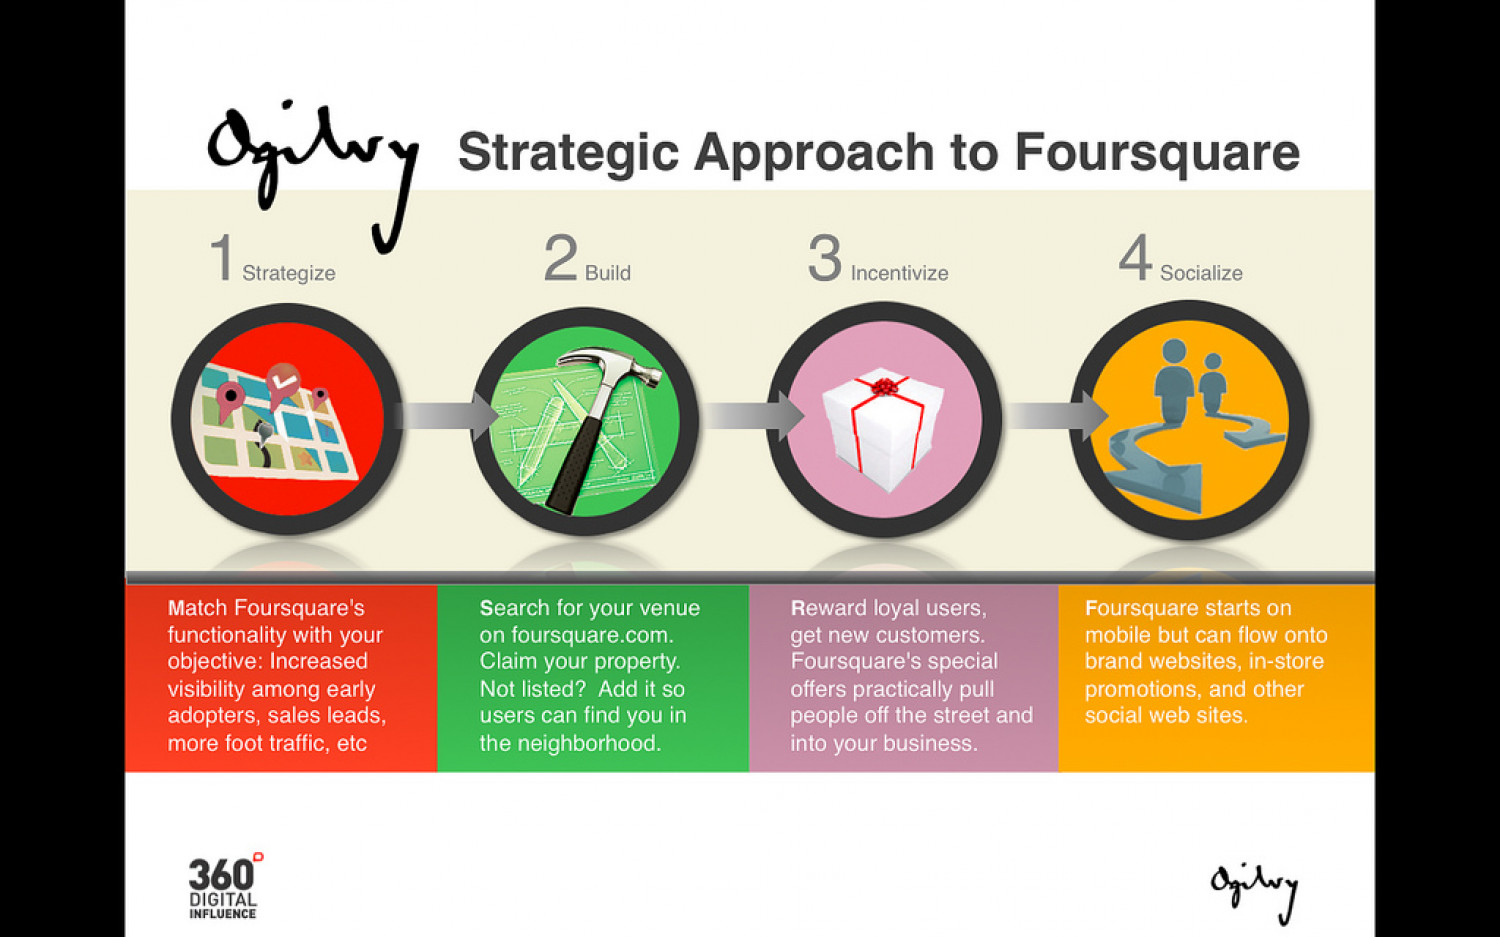 The Strategic Approach to Foursquare Infographic